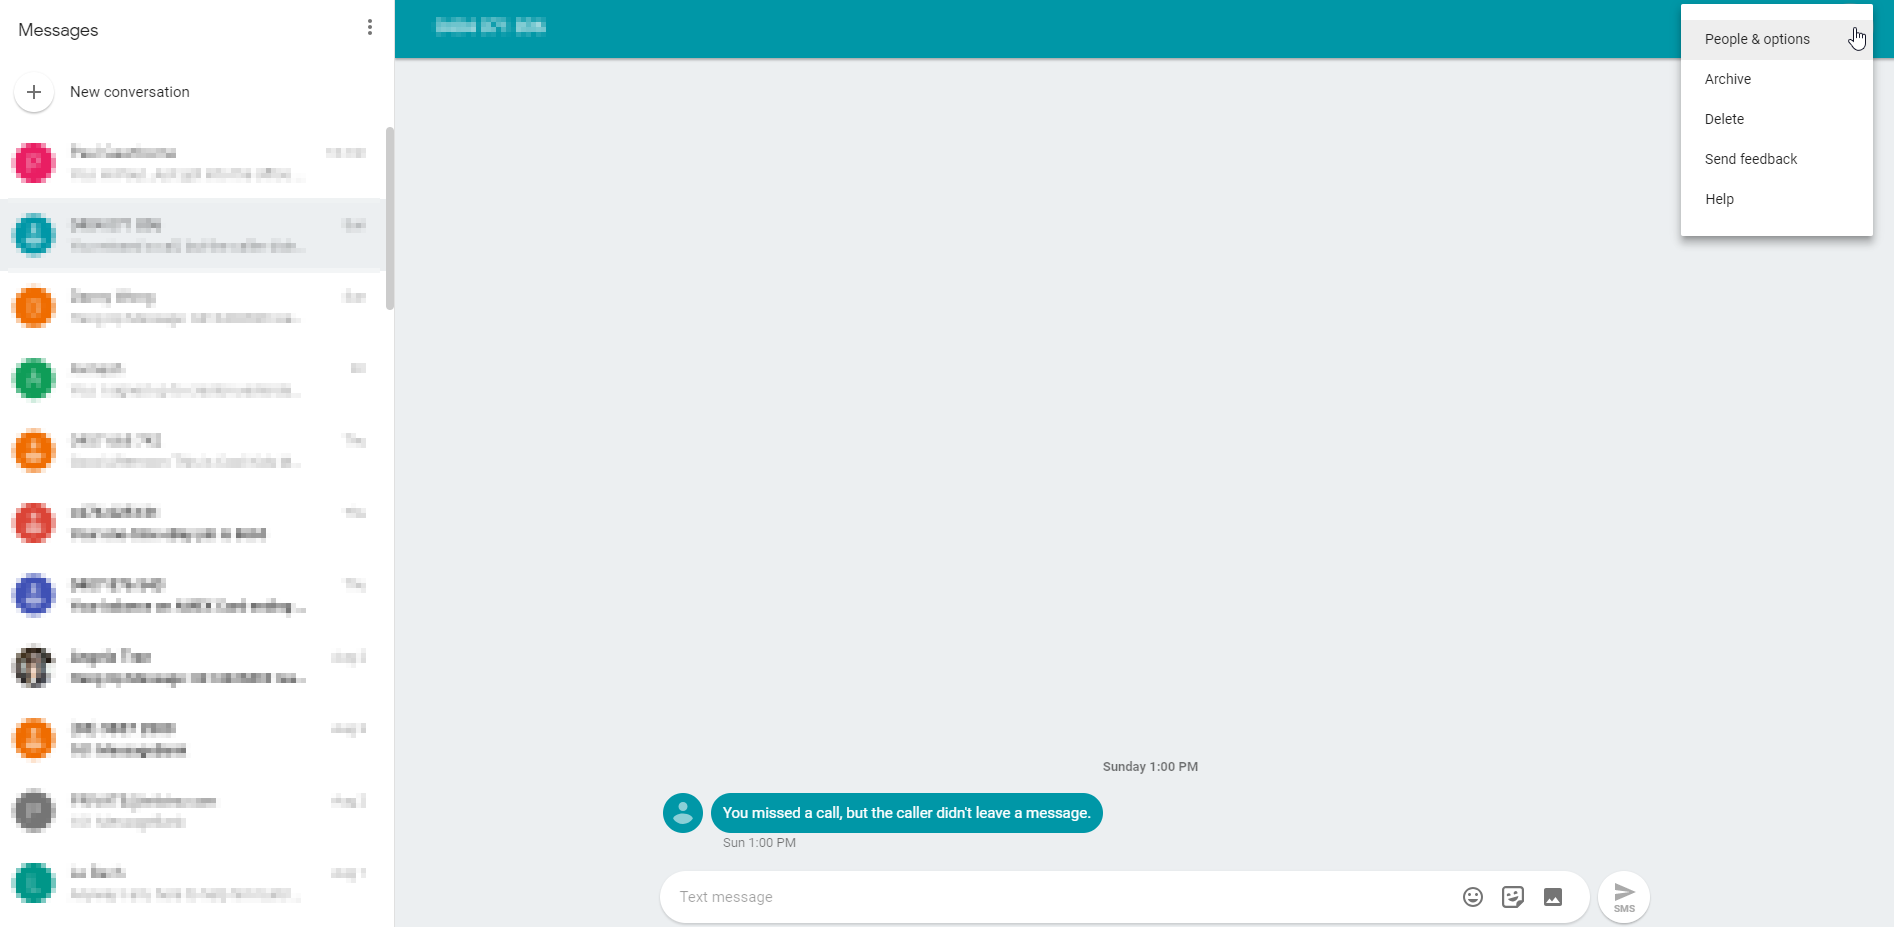 Business Legions - Android Messages for Web 2